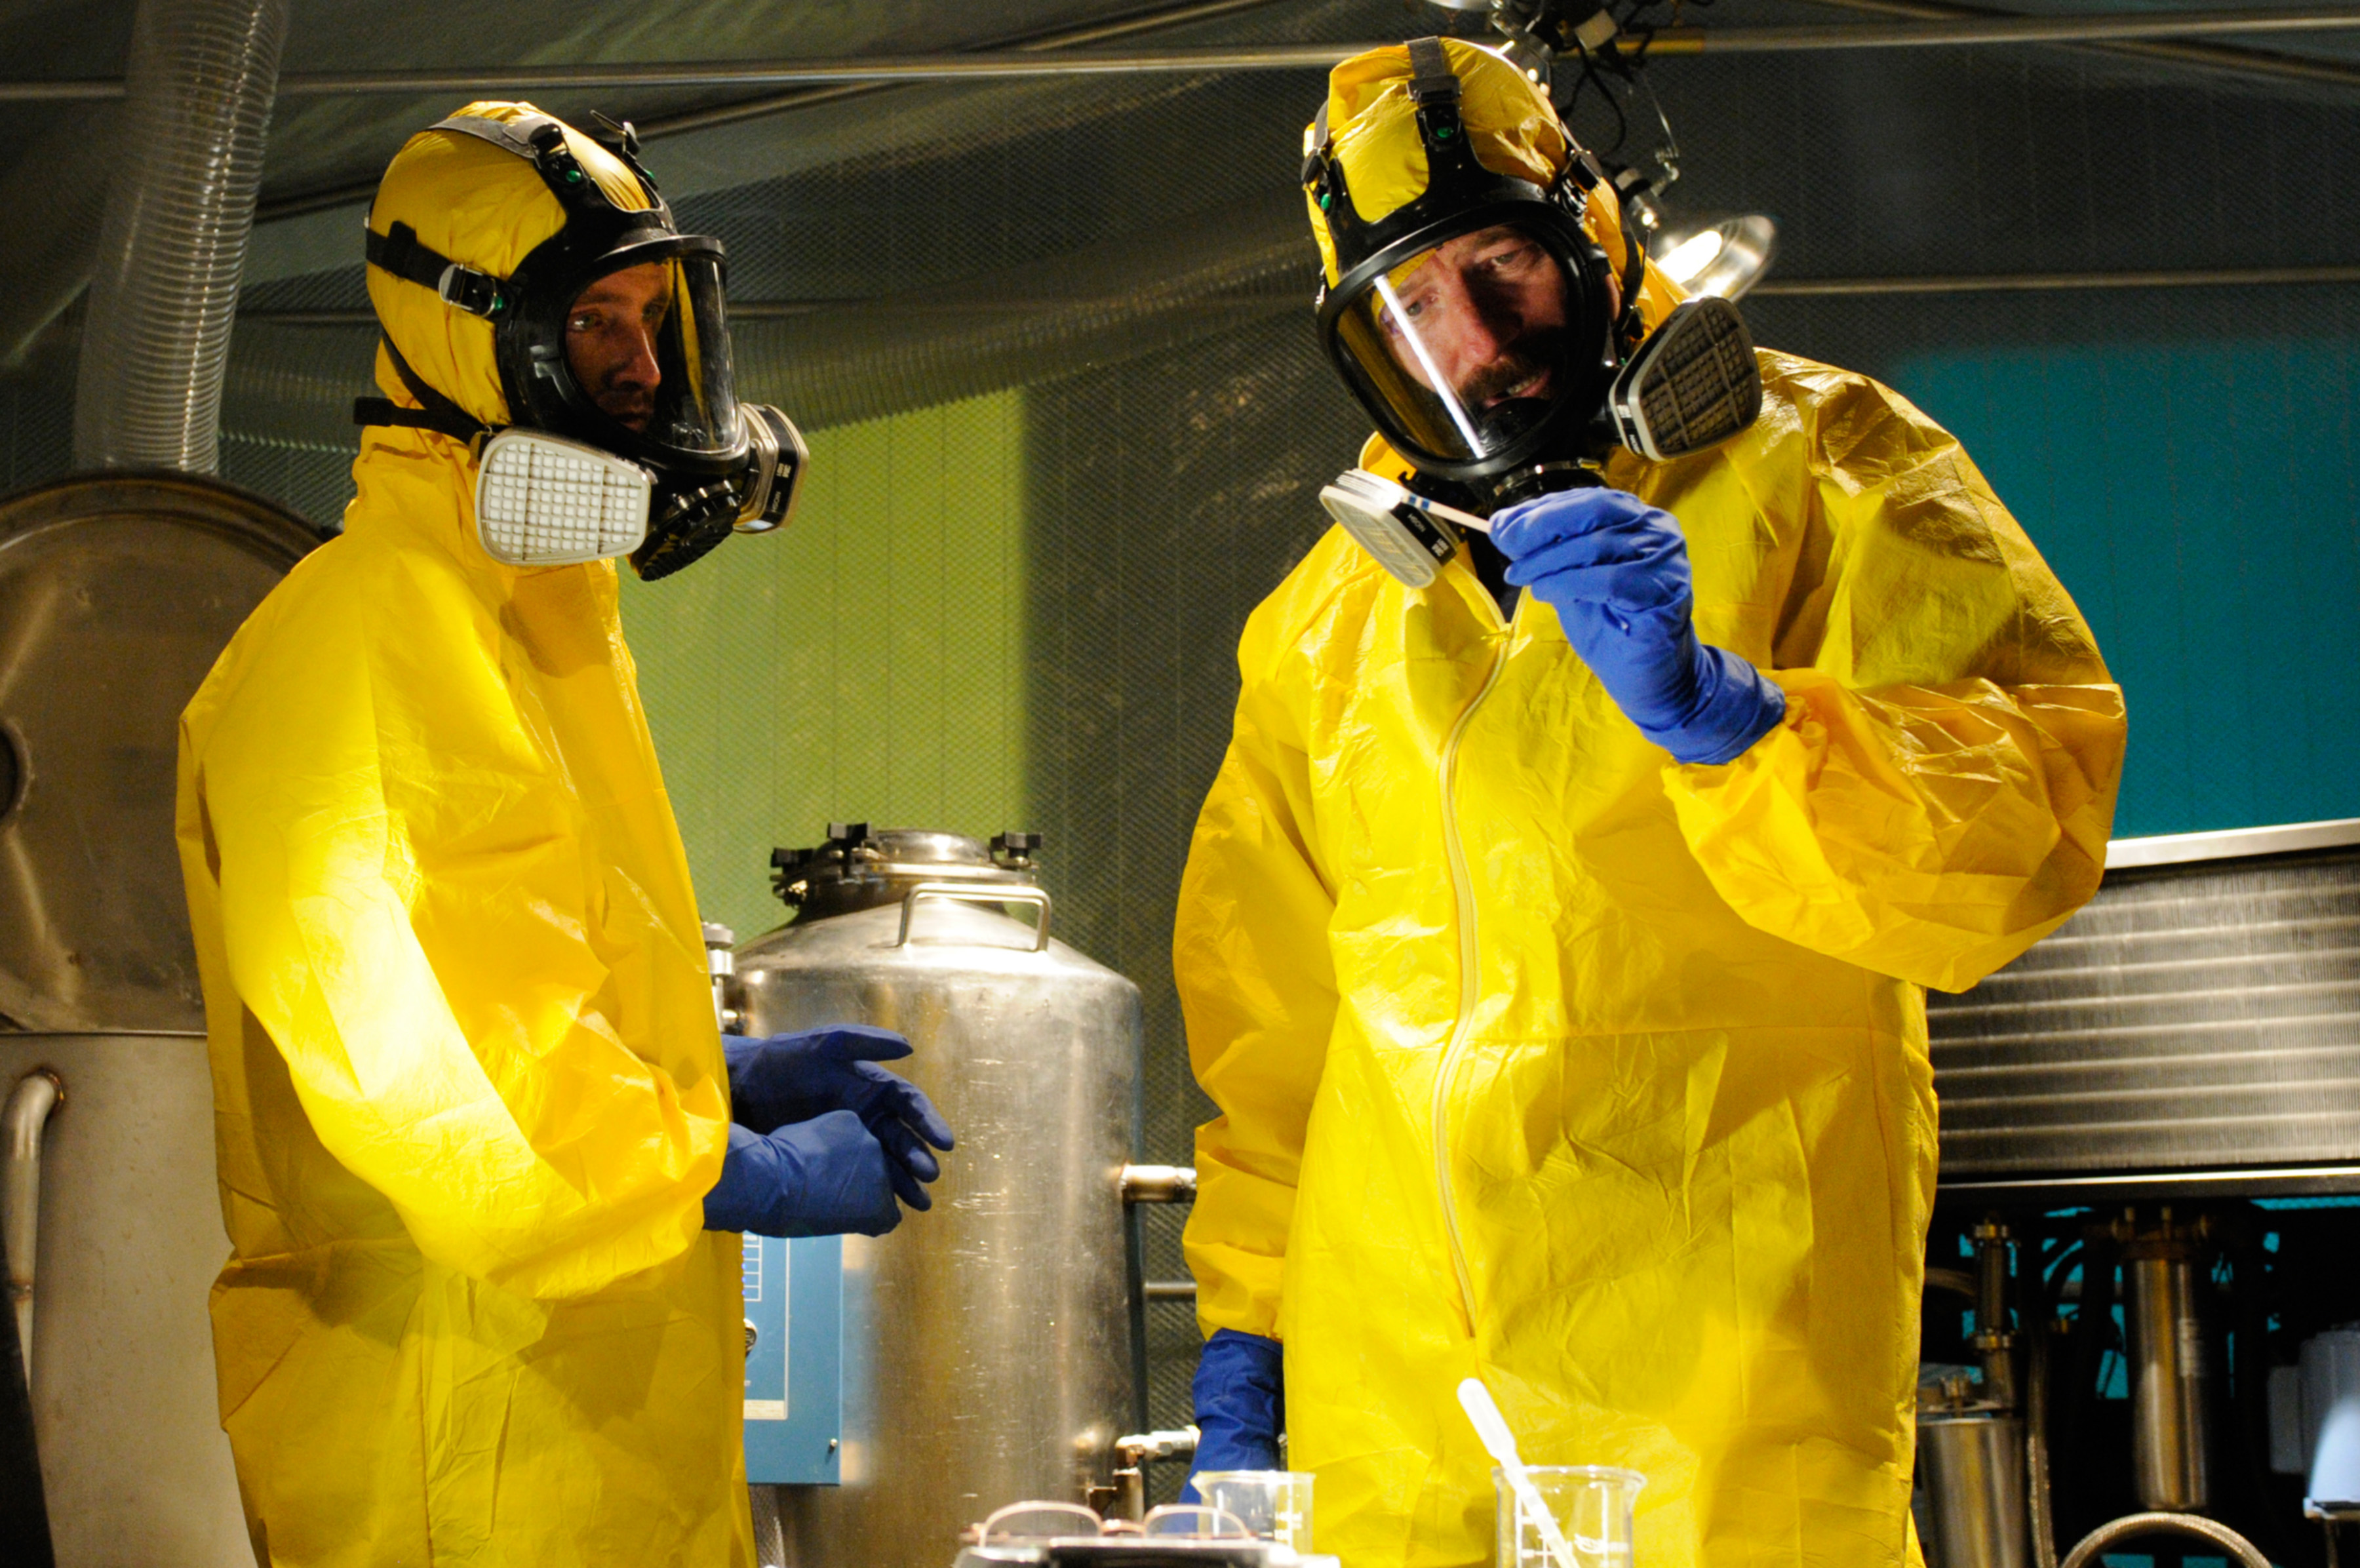 BREAKING BAD, (from left): Aaron Paul, Bryan Cranston, 'Hazard Pay', (Season 5, ep. 503, aired July